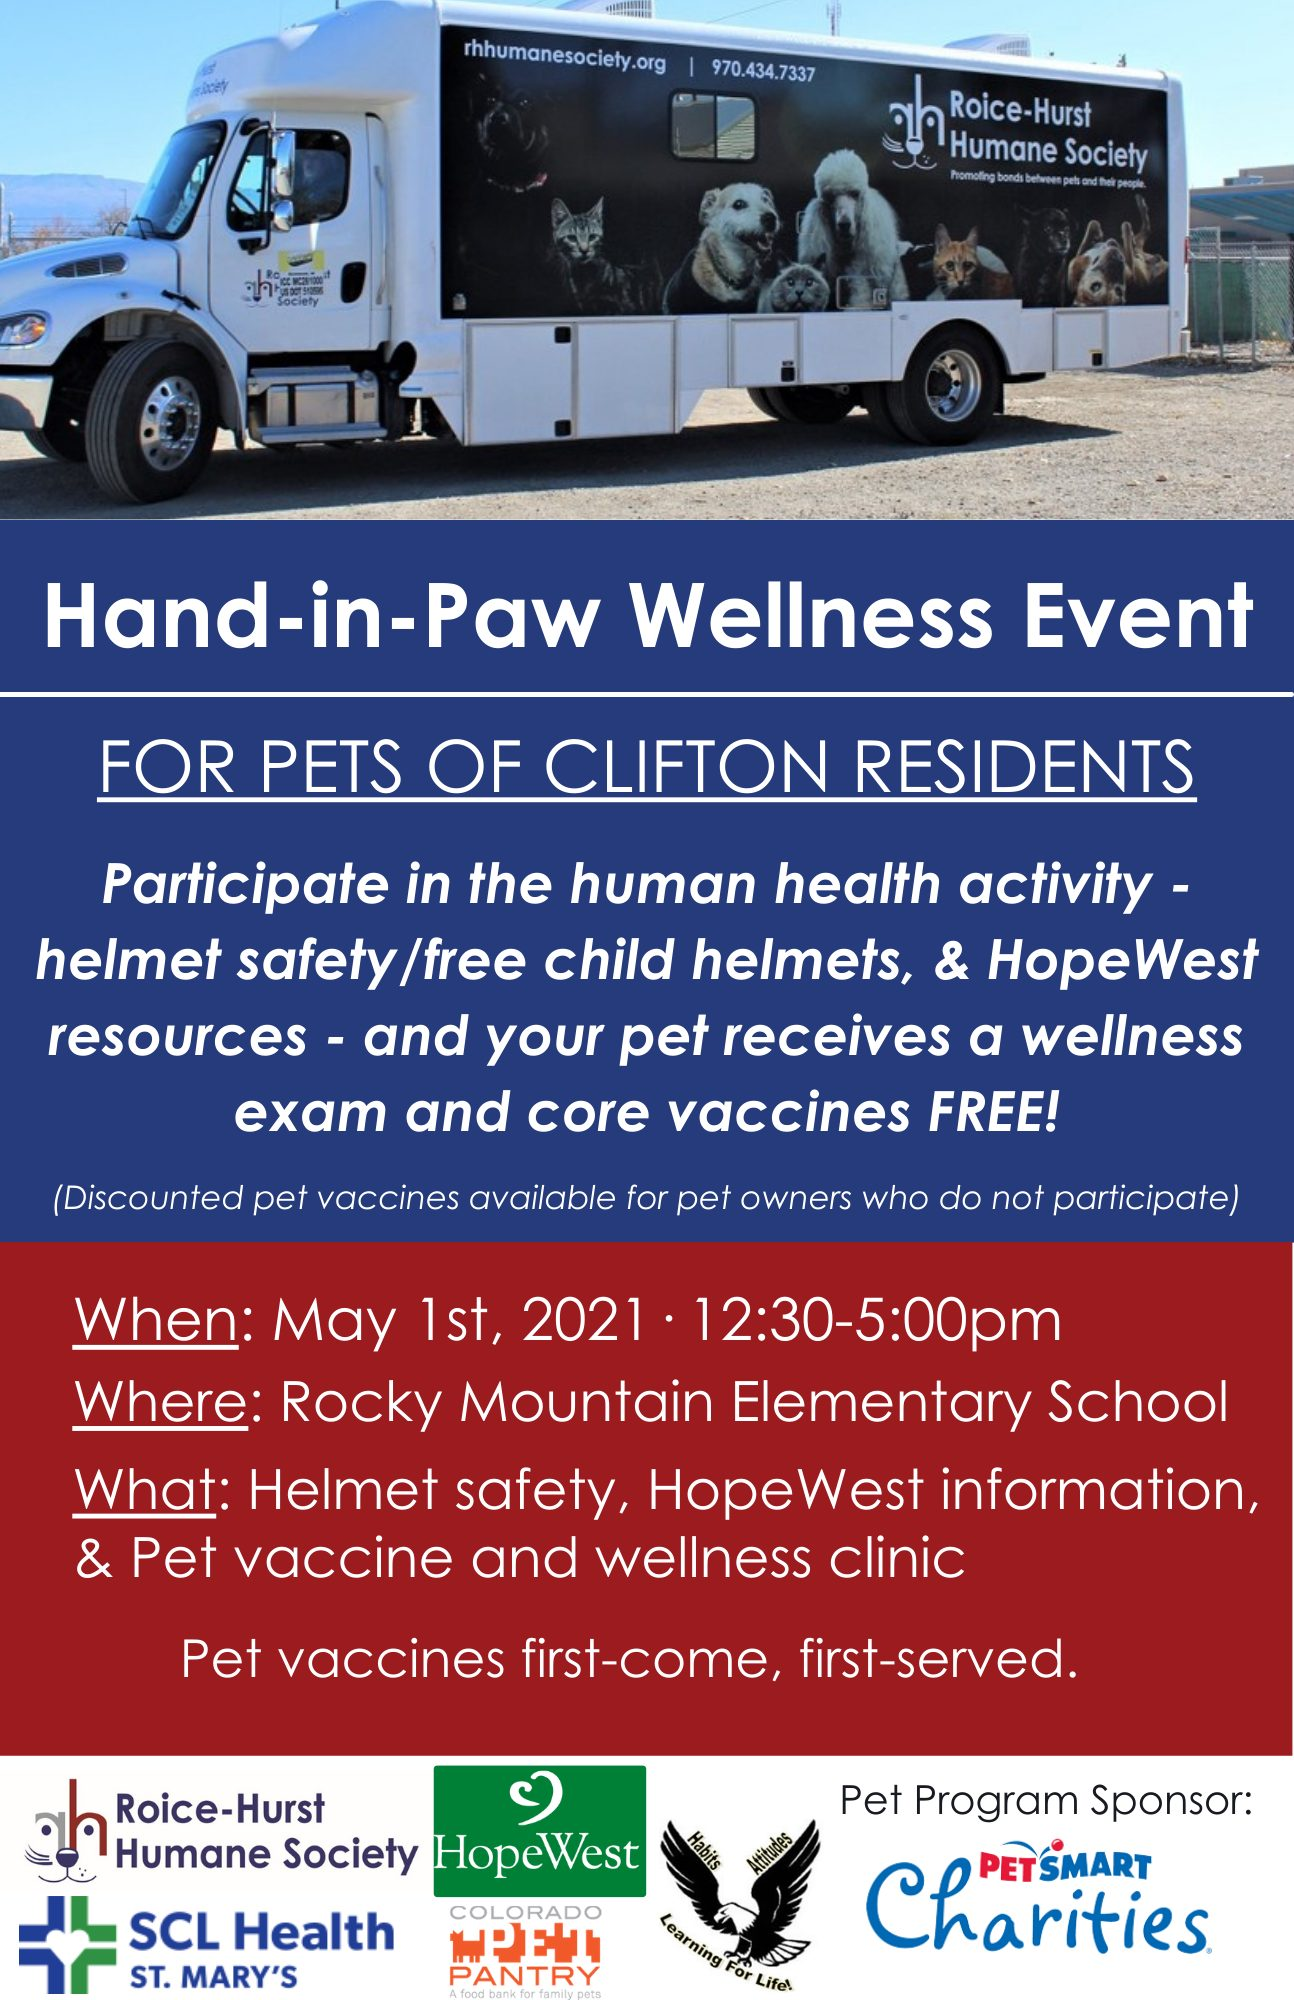 Hand-in-Paw Wellness event